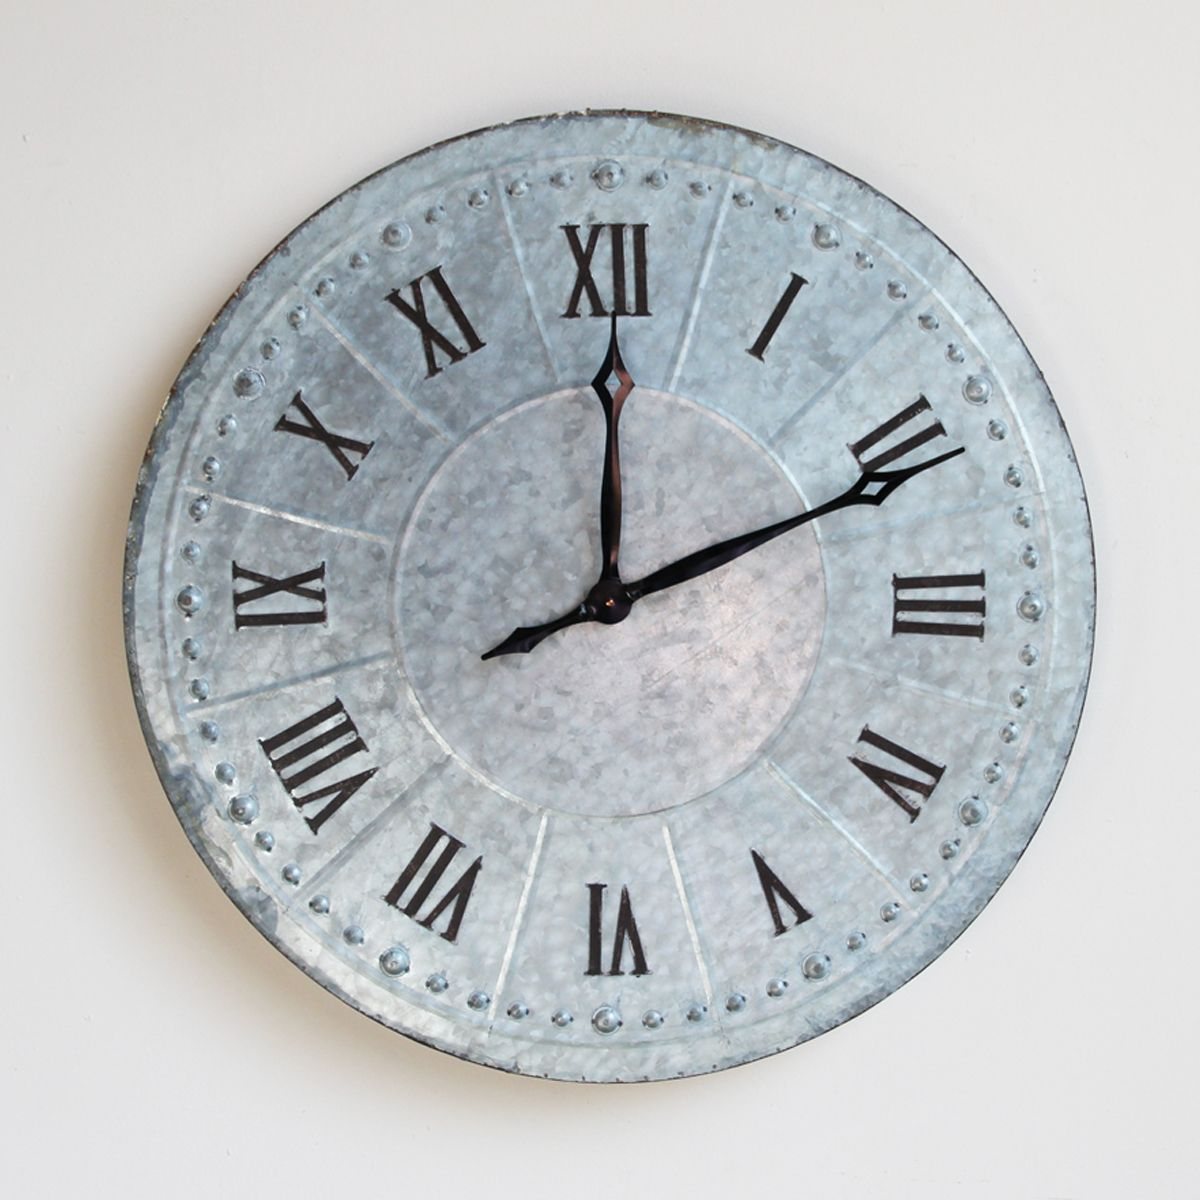 Oversized galvanized metal wall clock with roman numerals.  Battery operated.